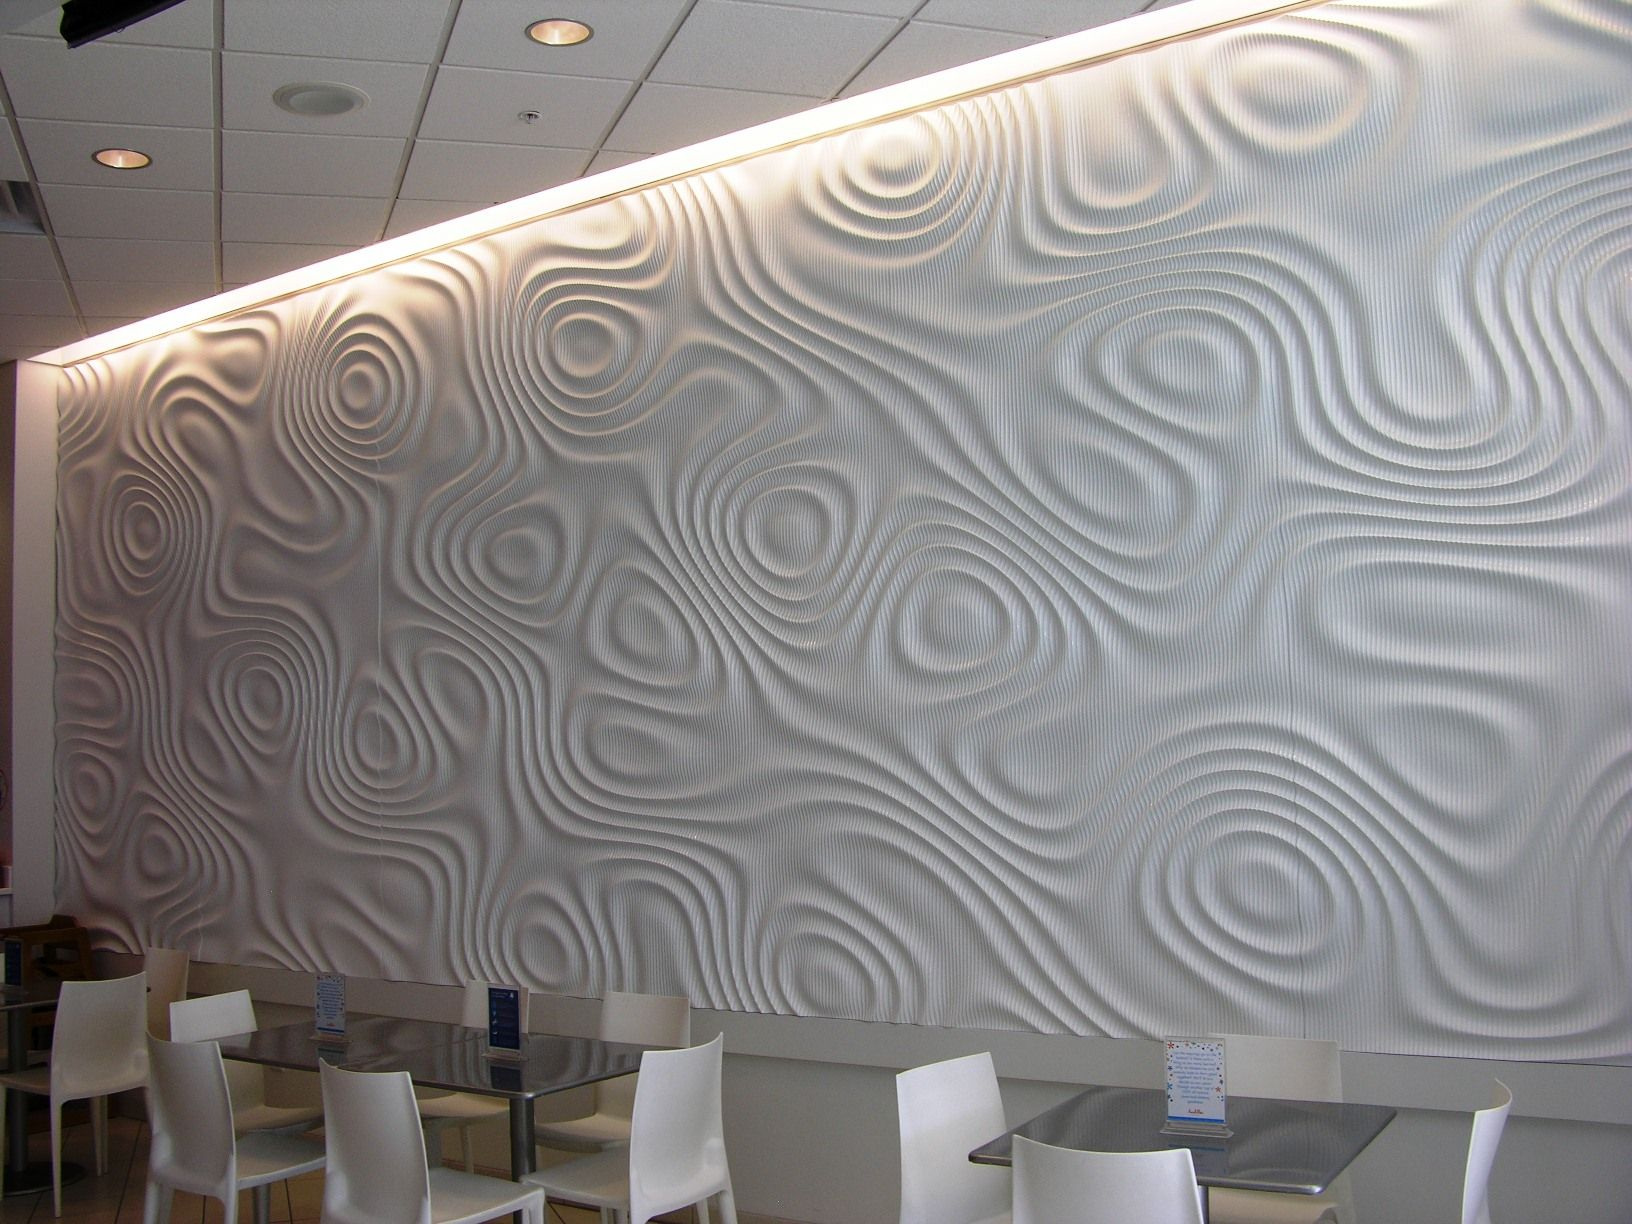 interlam mdf wavy wall panels 3d wall panels decorative wall panels - Decorative Wall Panels